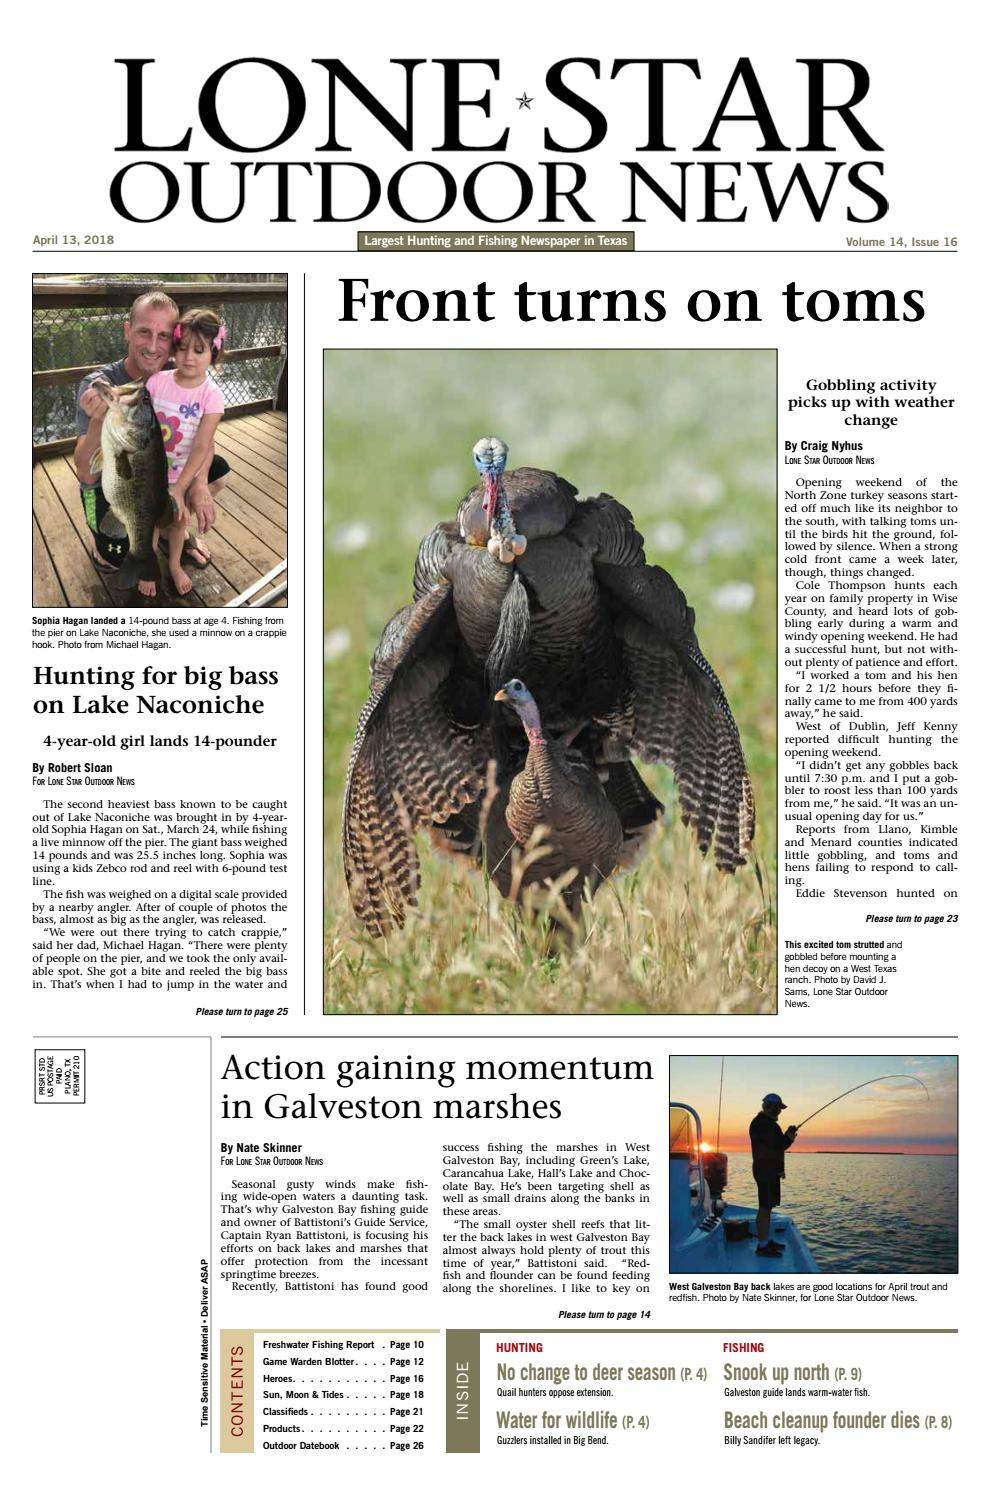 April 12, 2018 - Lone Star Outdoor News - Fishing & Hunting